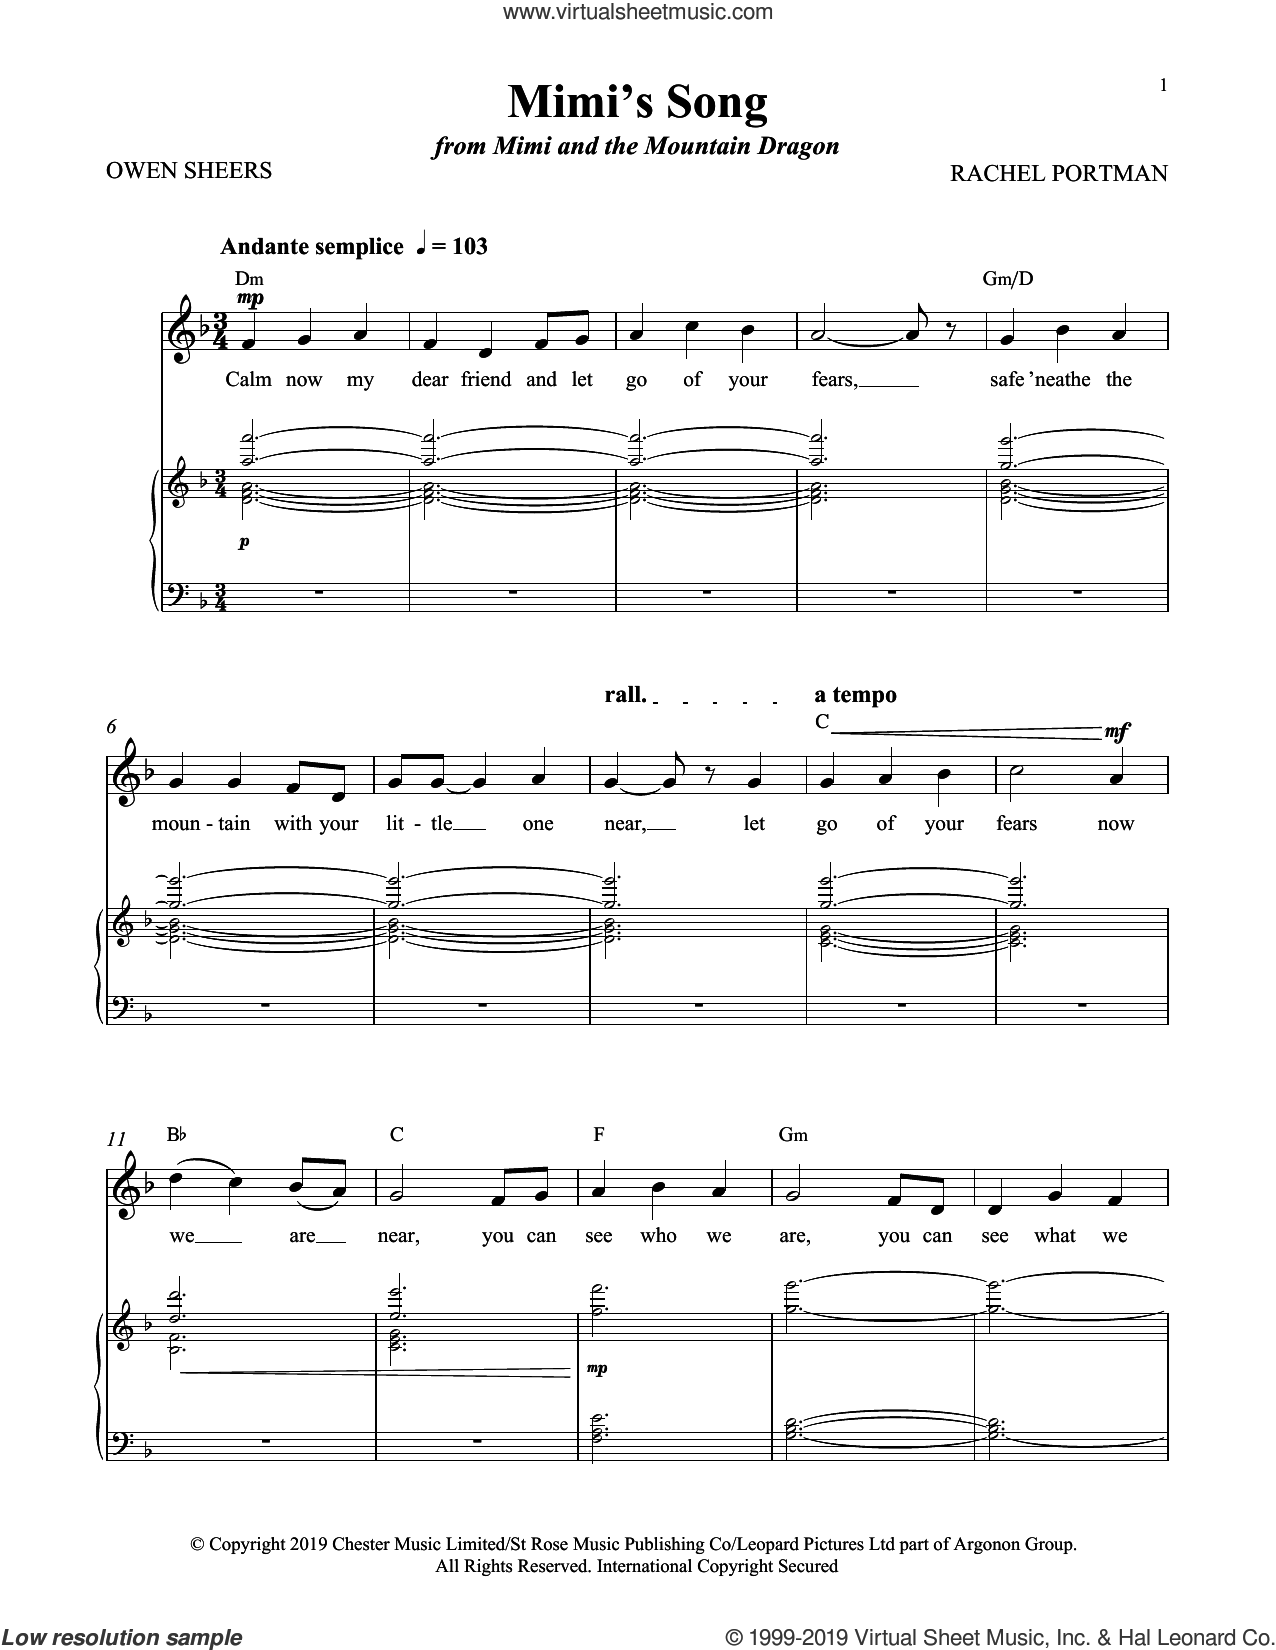 Mimi's Song (from Mimi and the Mountain Dragon) sheet music for voice and piano by Rachel Portman and Owen Sheers, intermediate skill level